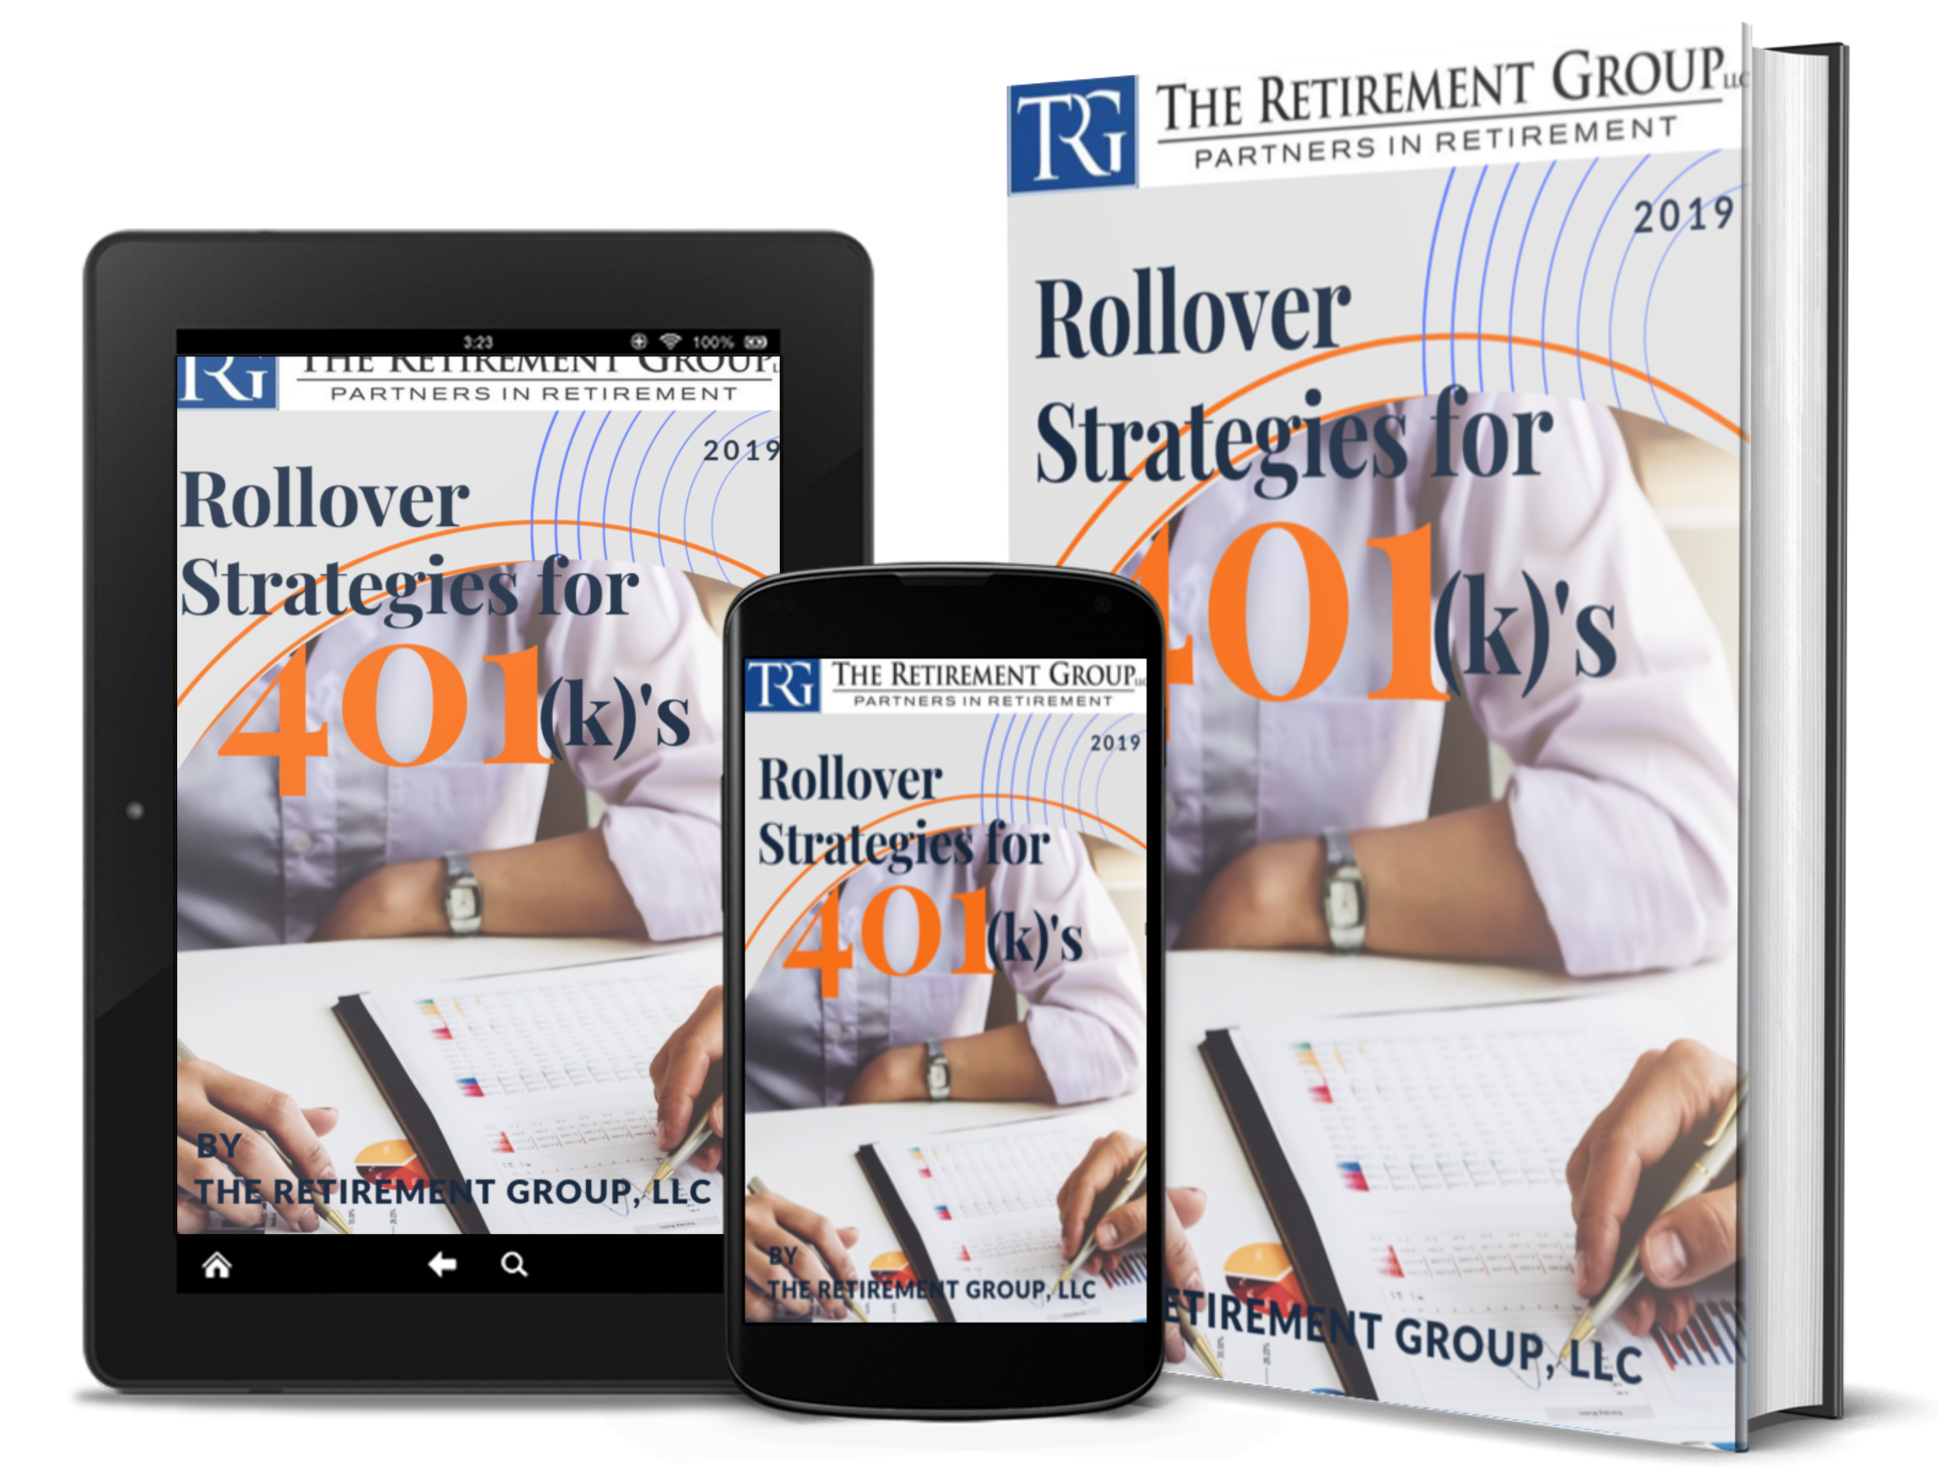 Rollover Strategies for 401k - cropped